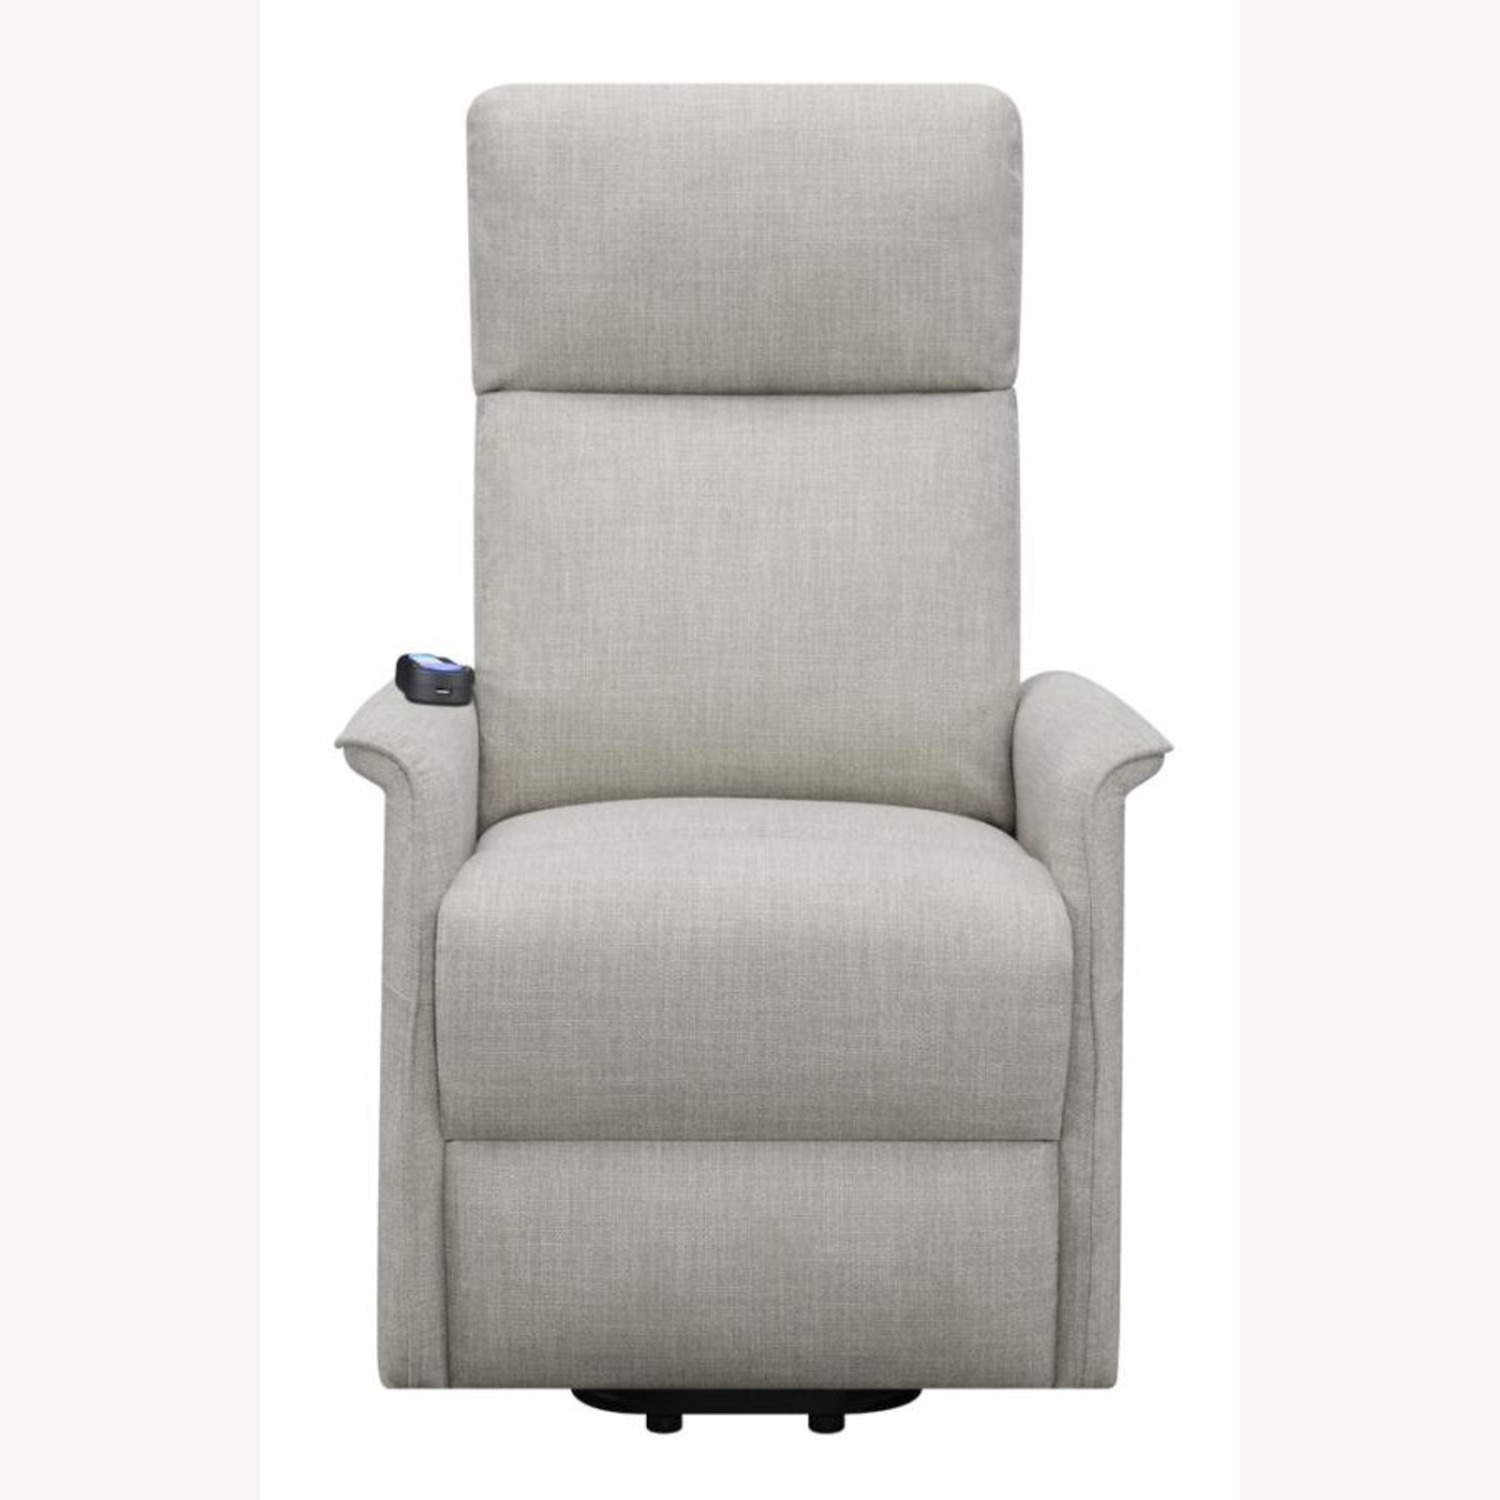 Power Lift Recliner Tufted In Beige Fabric - image-4